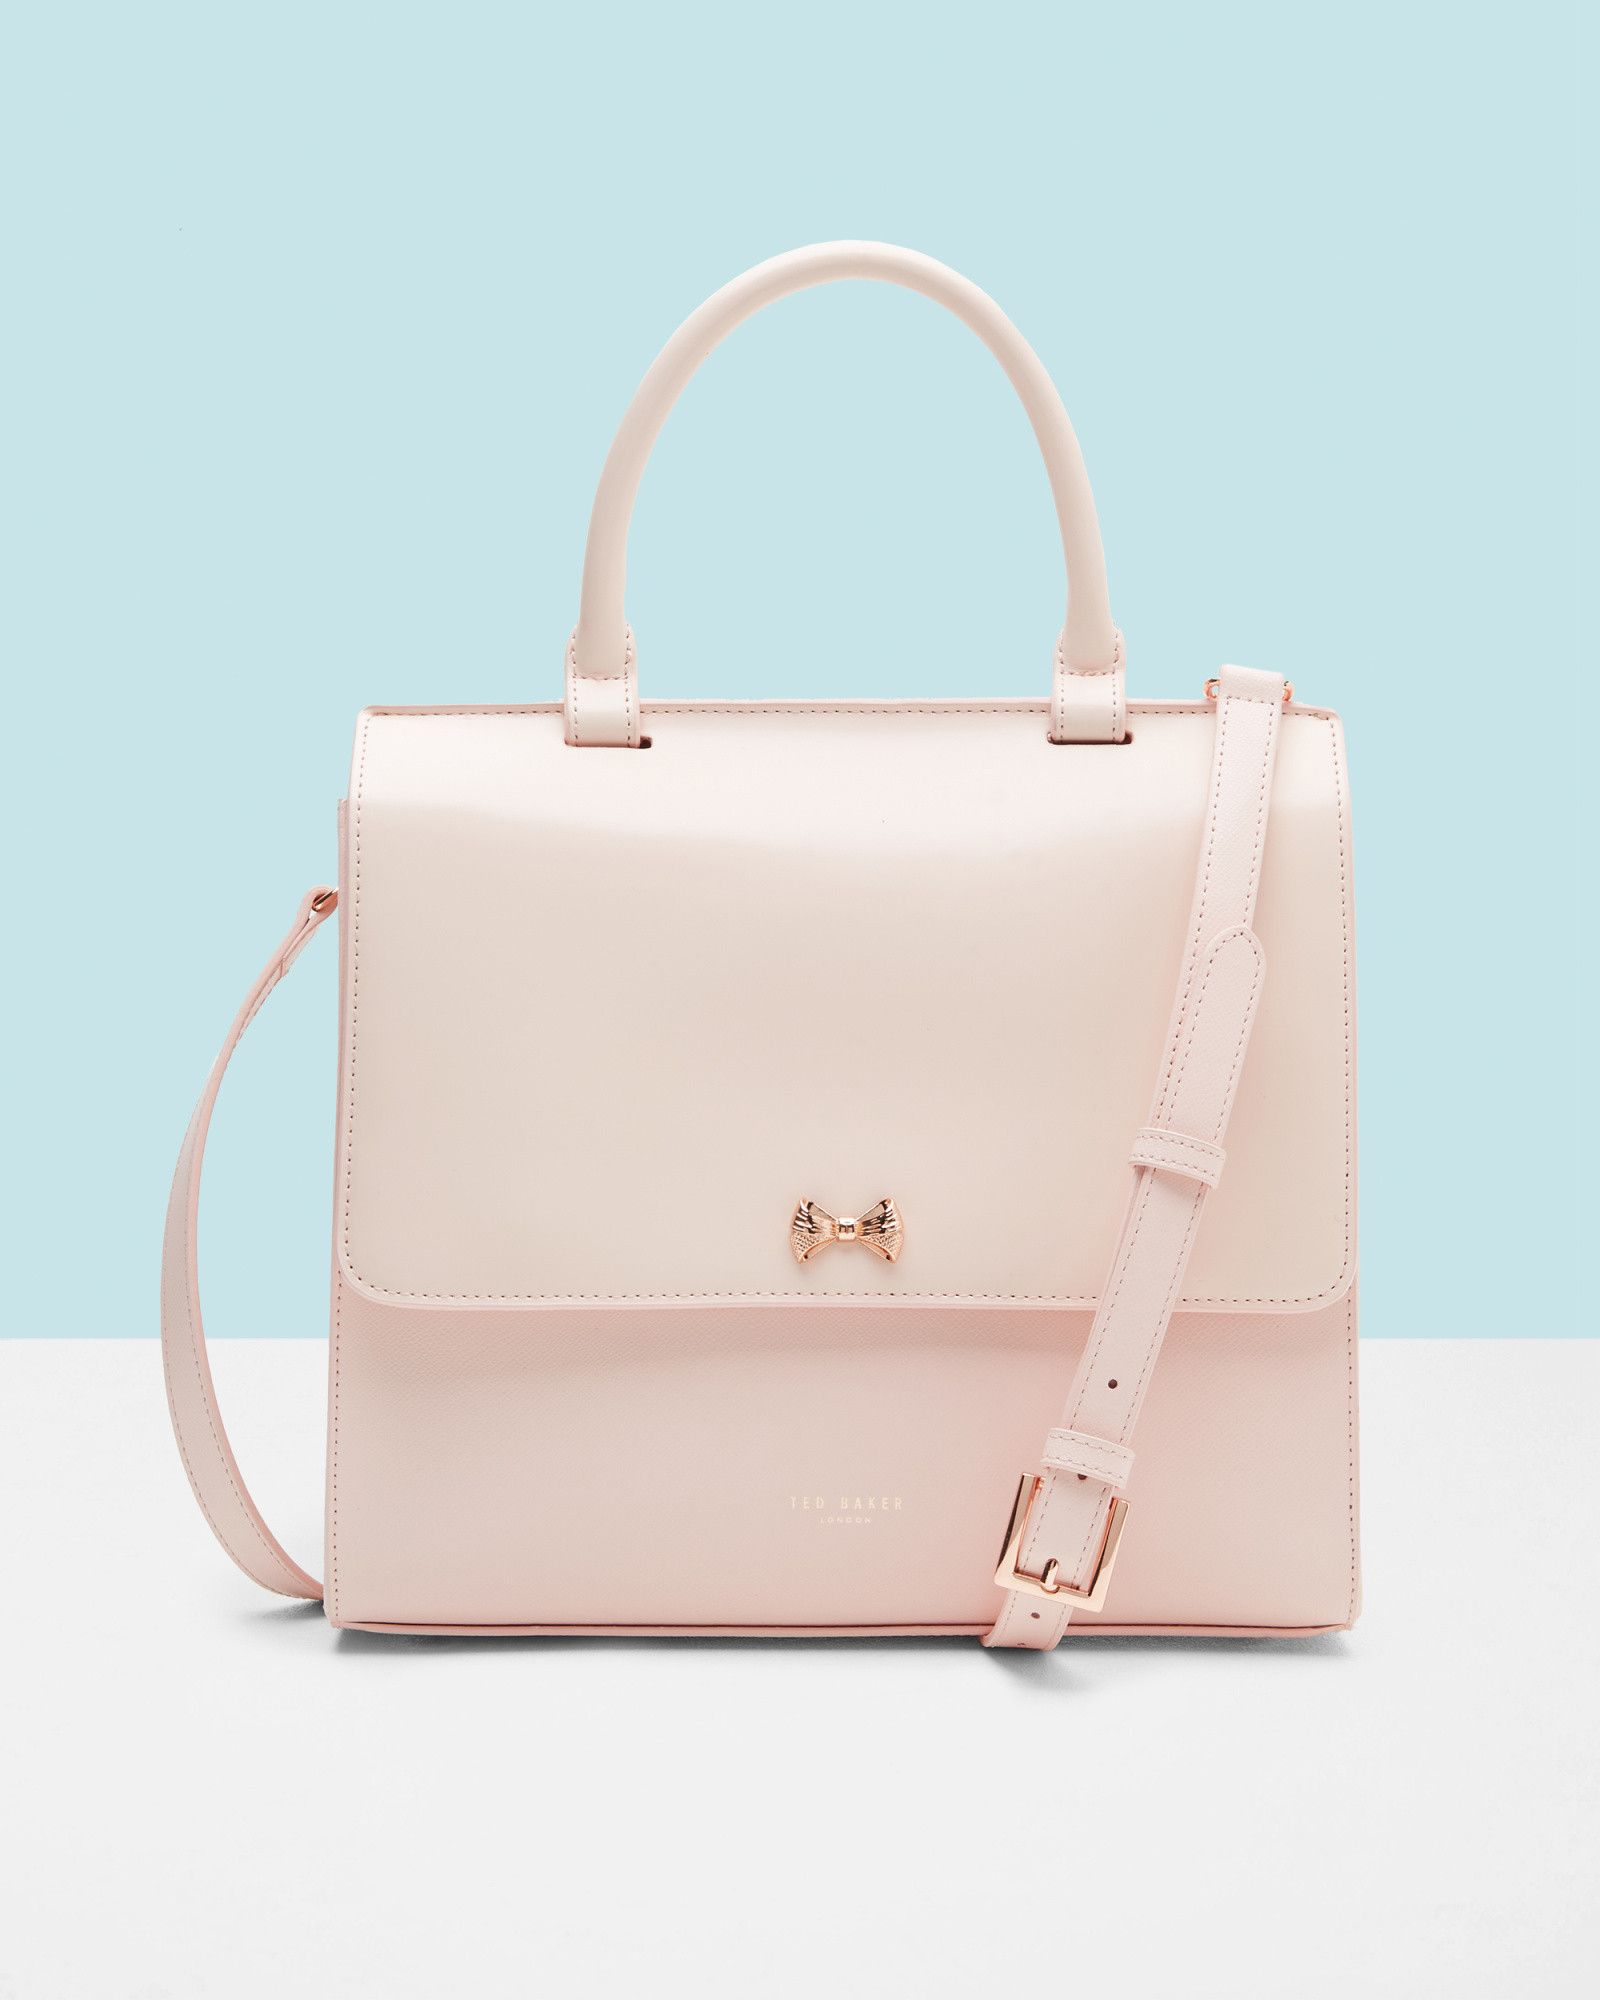 Top Handle Leather Bag Pale Pink Bags Ted Baker Uk